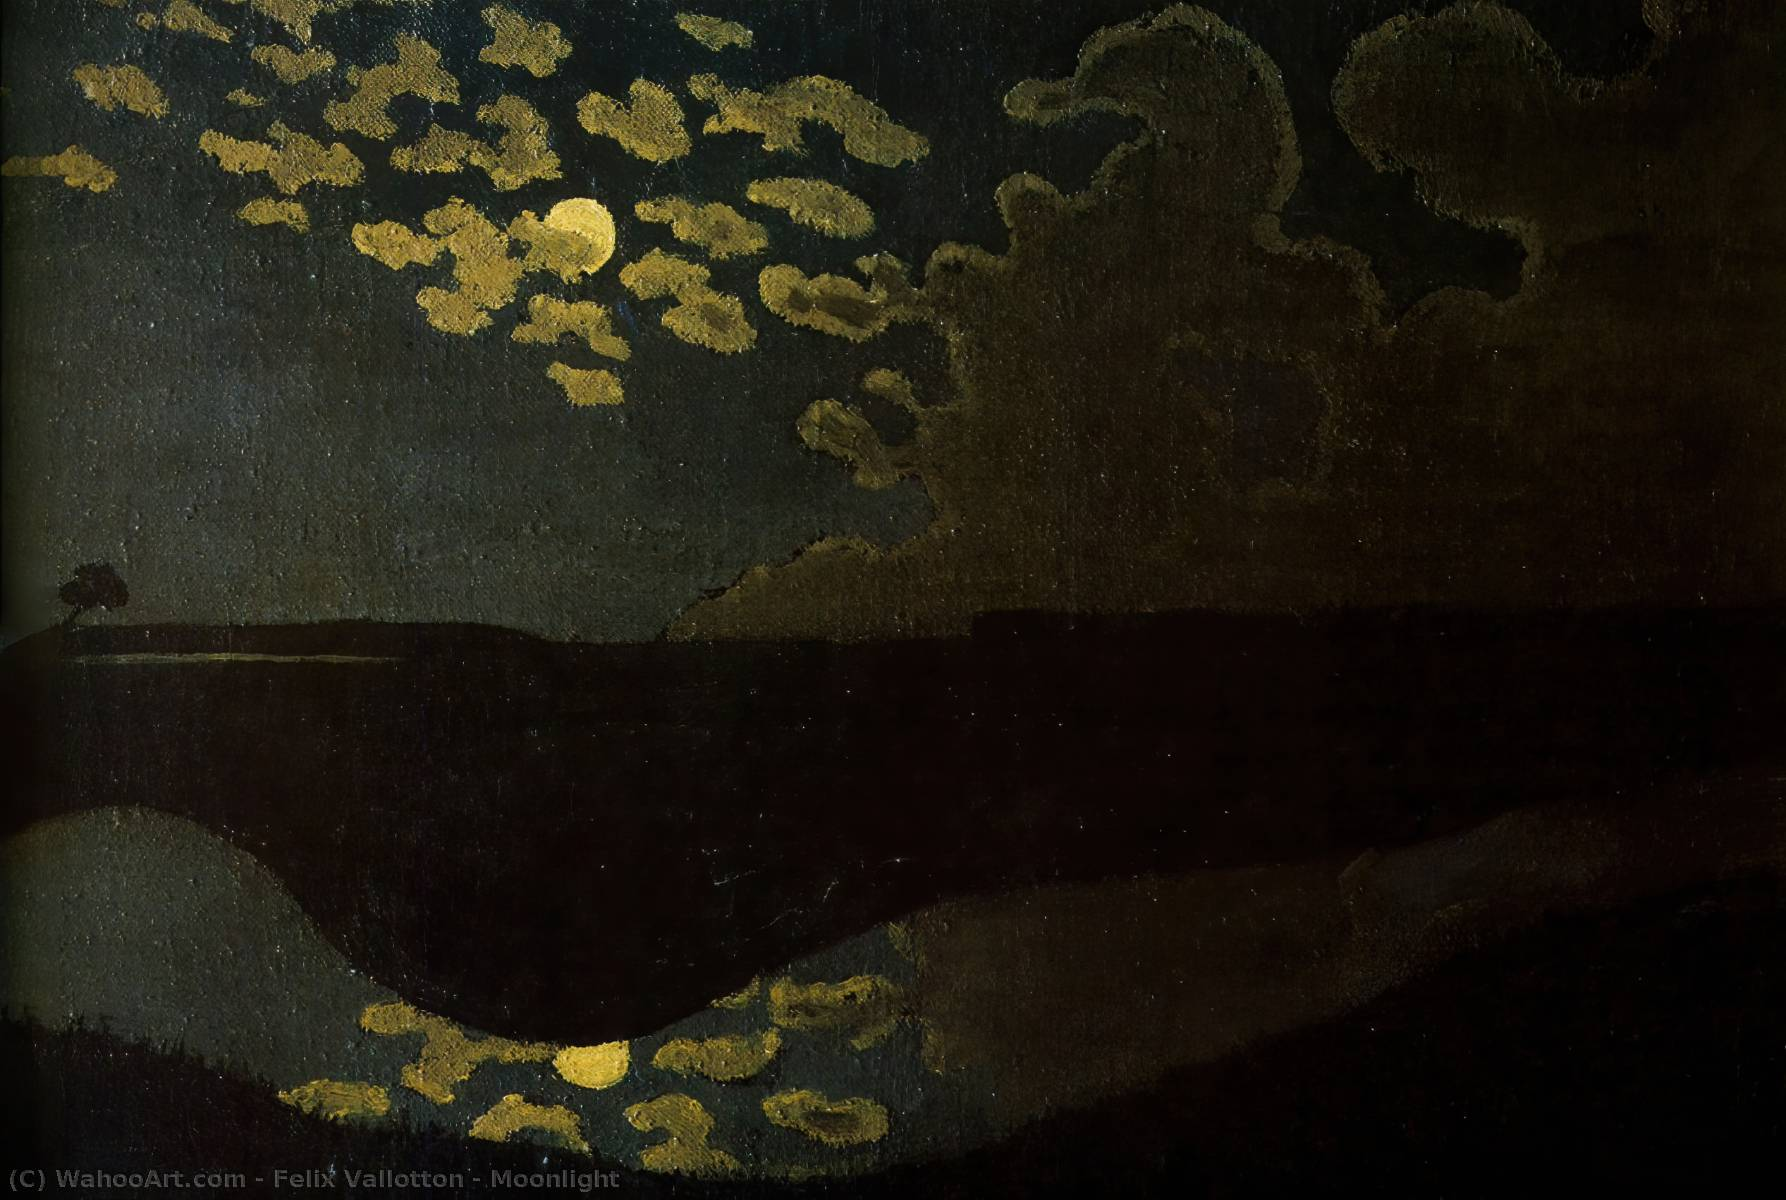 Order Art Reproductions | Moonlight, 1895 by Felix Vallotton (1865-1925, Switzerland) | WahooArt.com